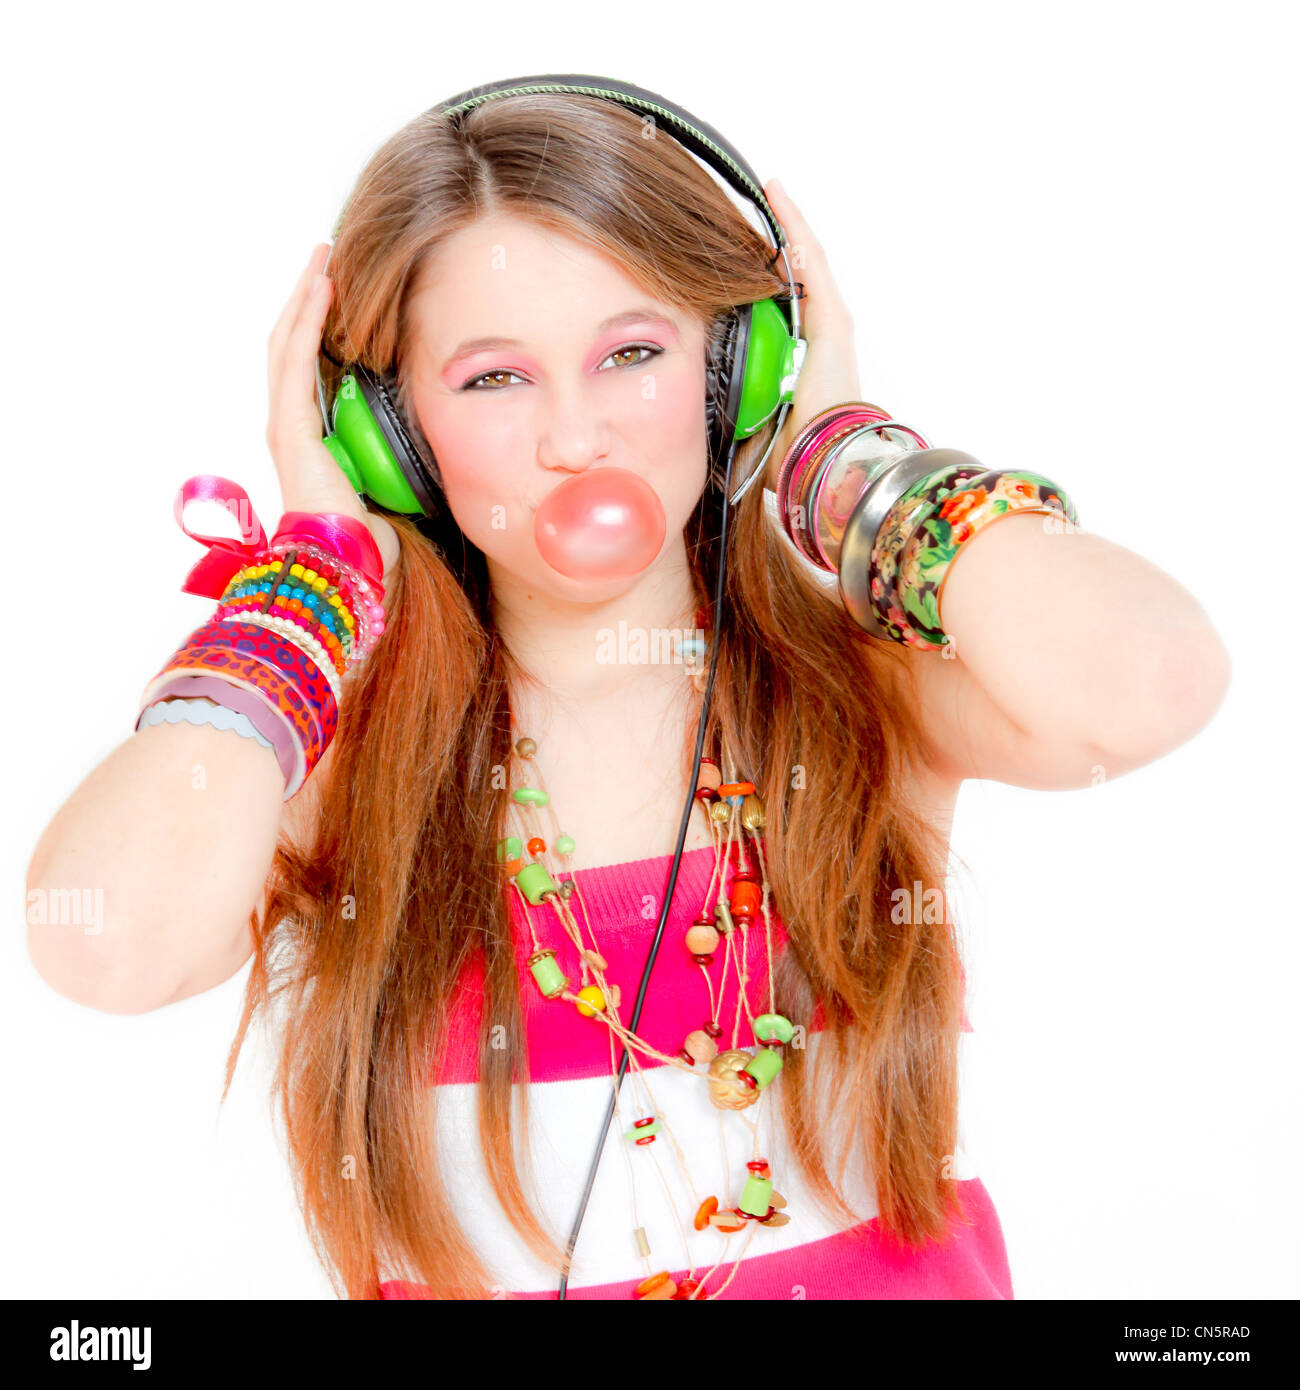 young teen girl listening to music on headphones and blowing gum - Stock Image